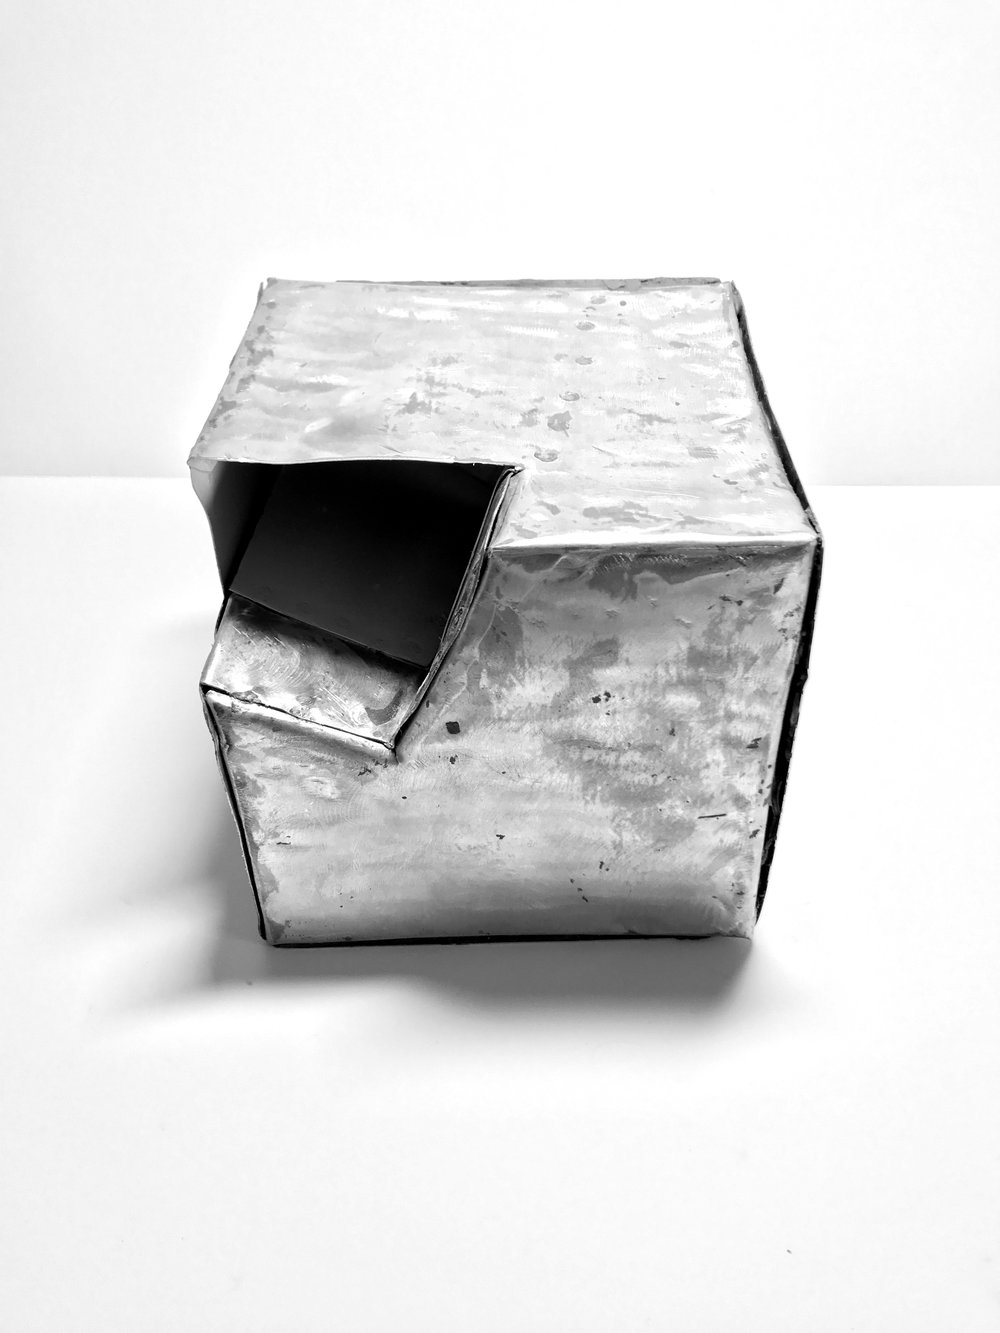 "CUTTING PLANES  Cut planes perpendicularly on a slanted axis. Overlap cuts from different sides to create reliefs in the cube.   SEAMS  Used only lap seams to not complicate the design which already draws attention to the reliefs made by the intersecting cuts.    COLOR  White used on the ""interior"" of the object to draw the viewer in."